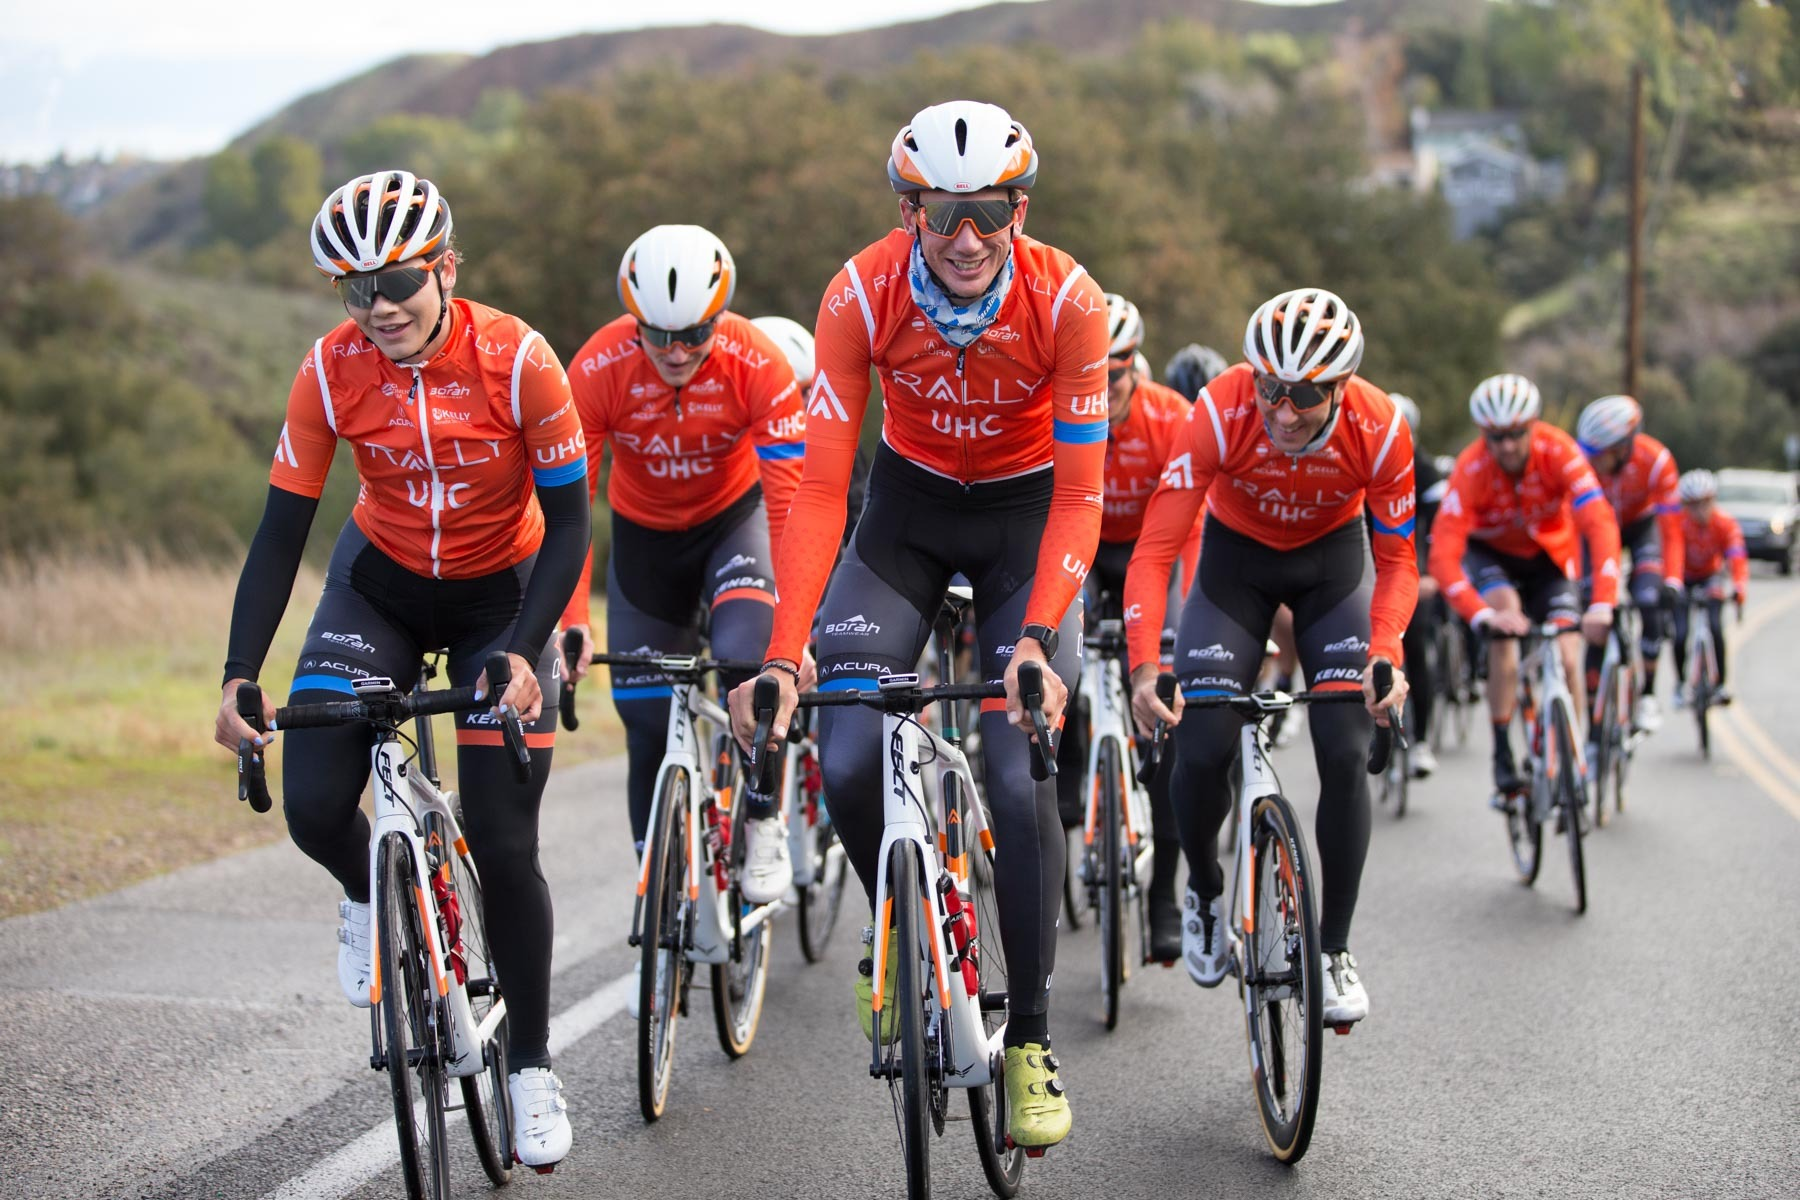 a8314b1b7 UnitedHealthcare Joins Rally Cycling as Co-Title Partner